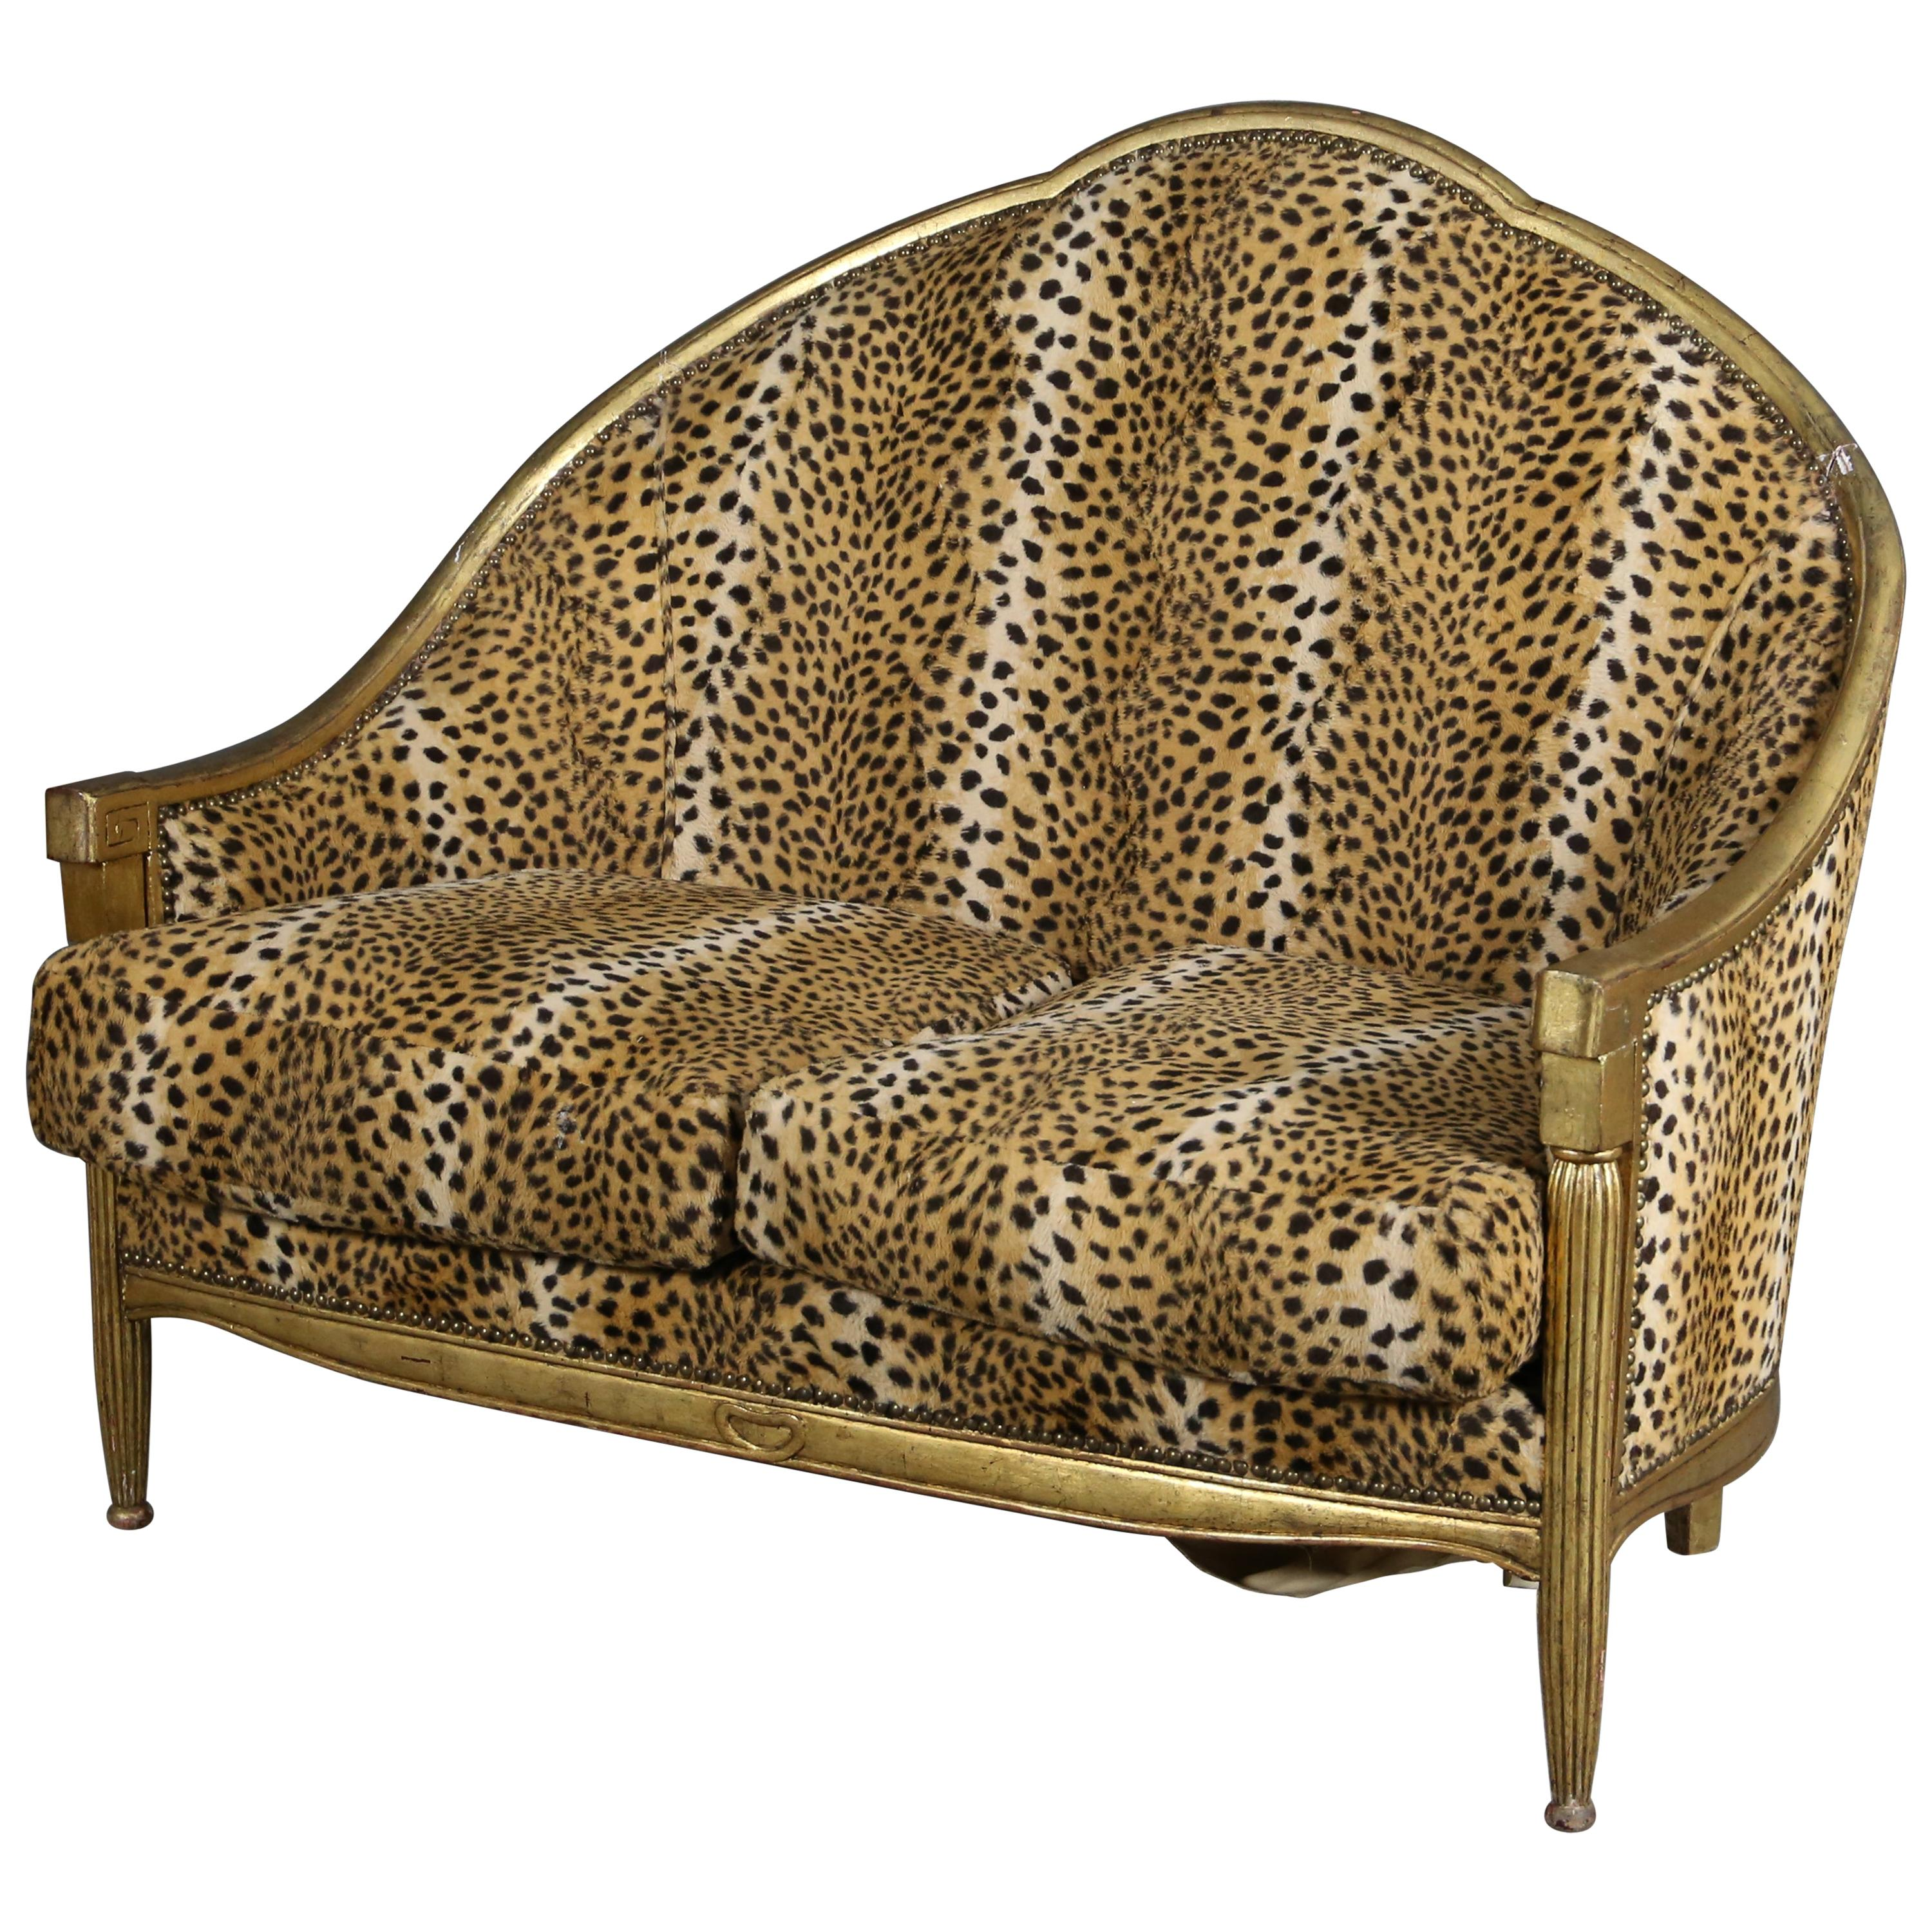 Sofa Attributed to Paul Iribe in Carved and Gilded Wood Leopard Fabrice, 1940